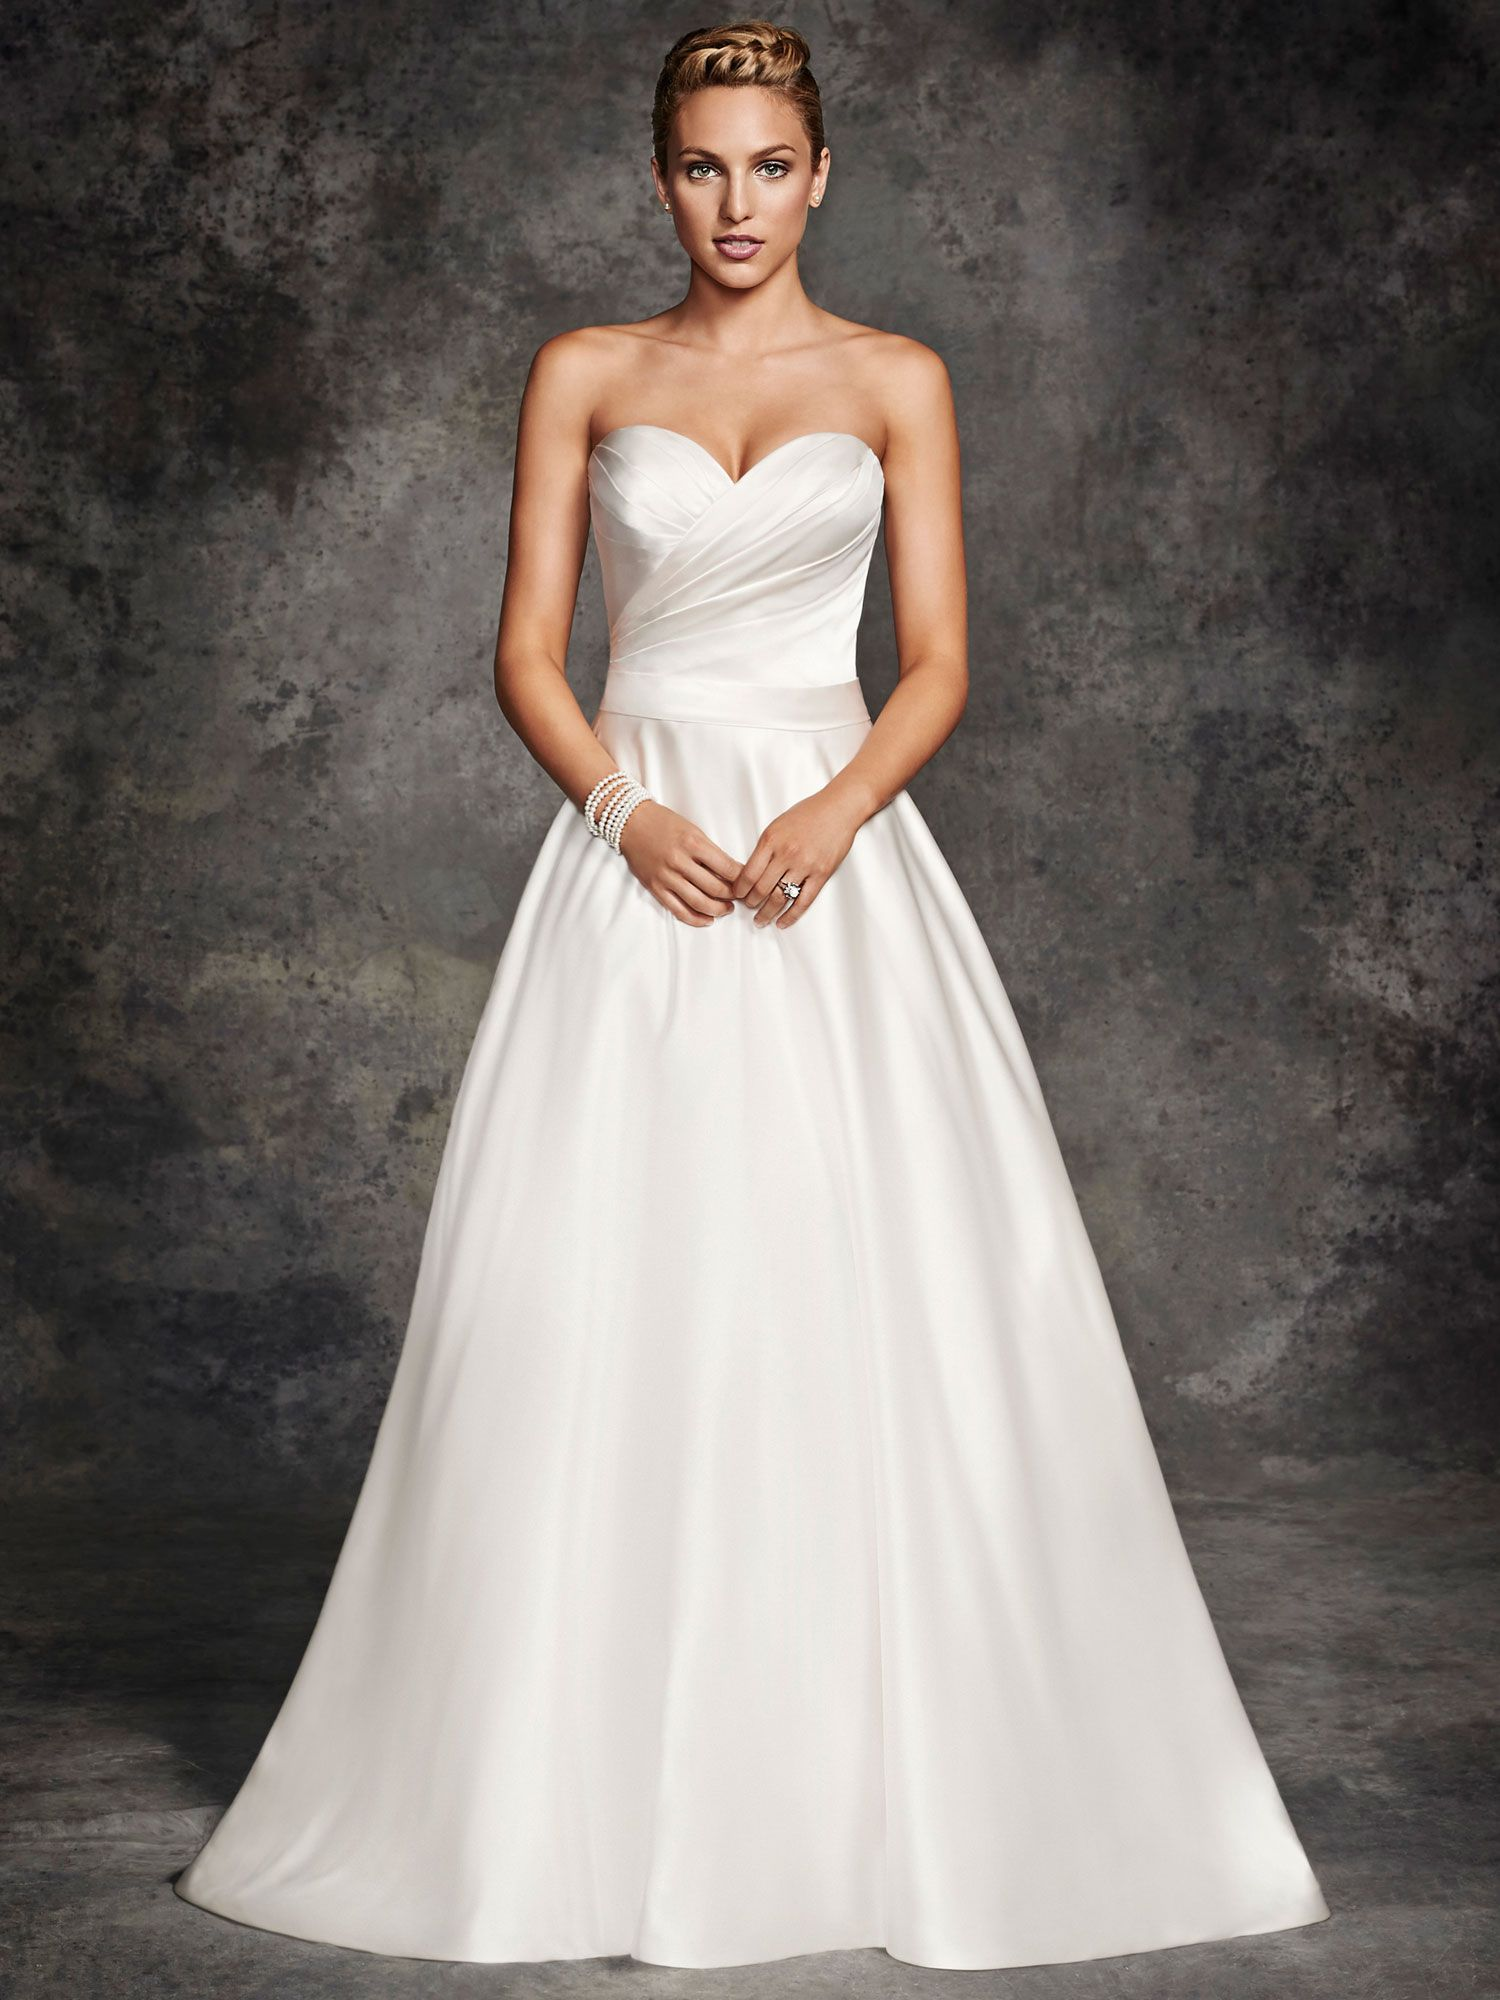 Style be271 bridal gowns wedding dresses ella for Private label wedding dresses